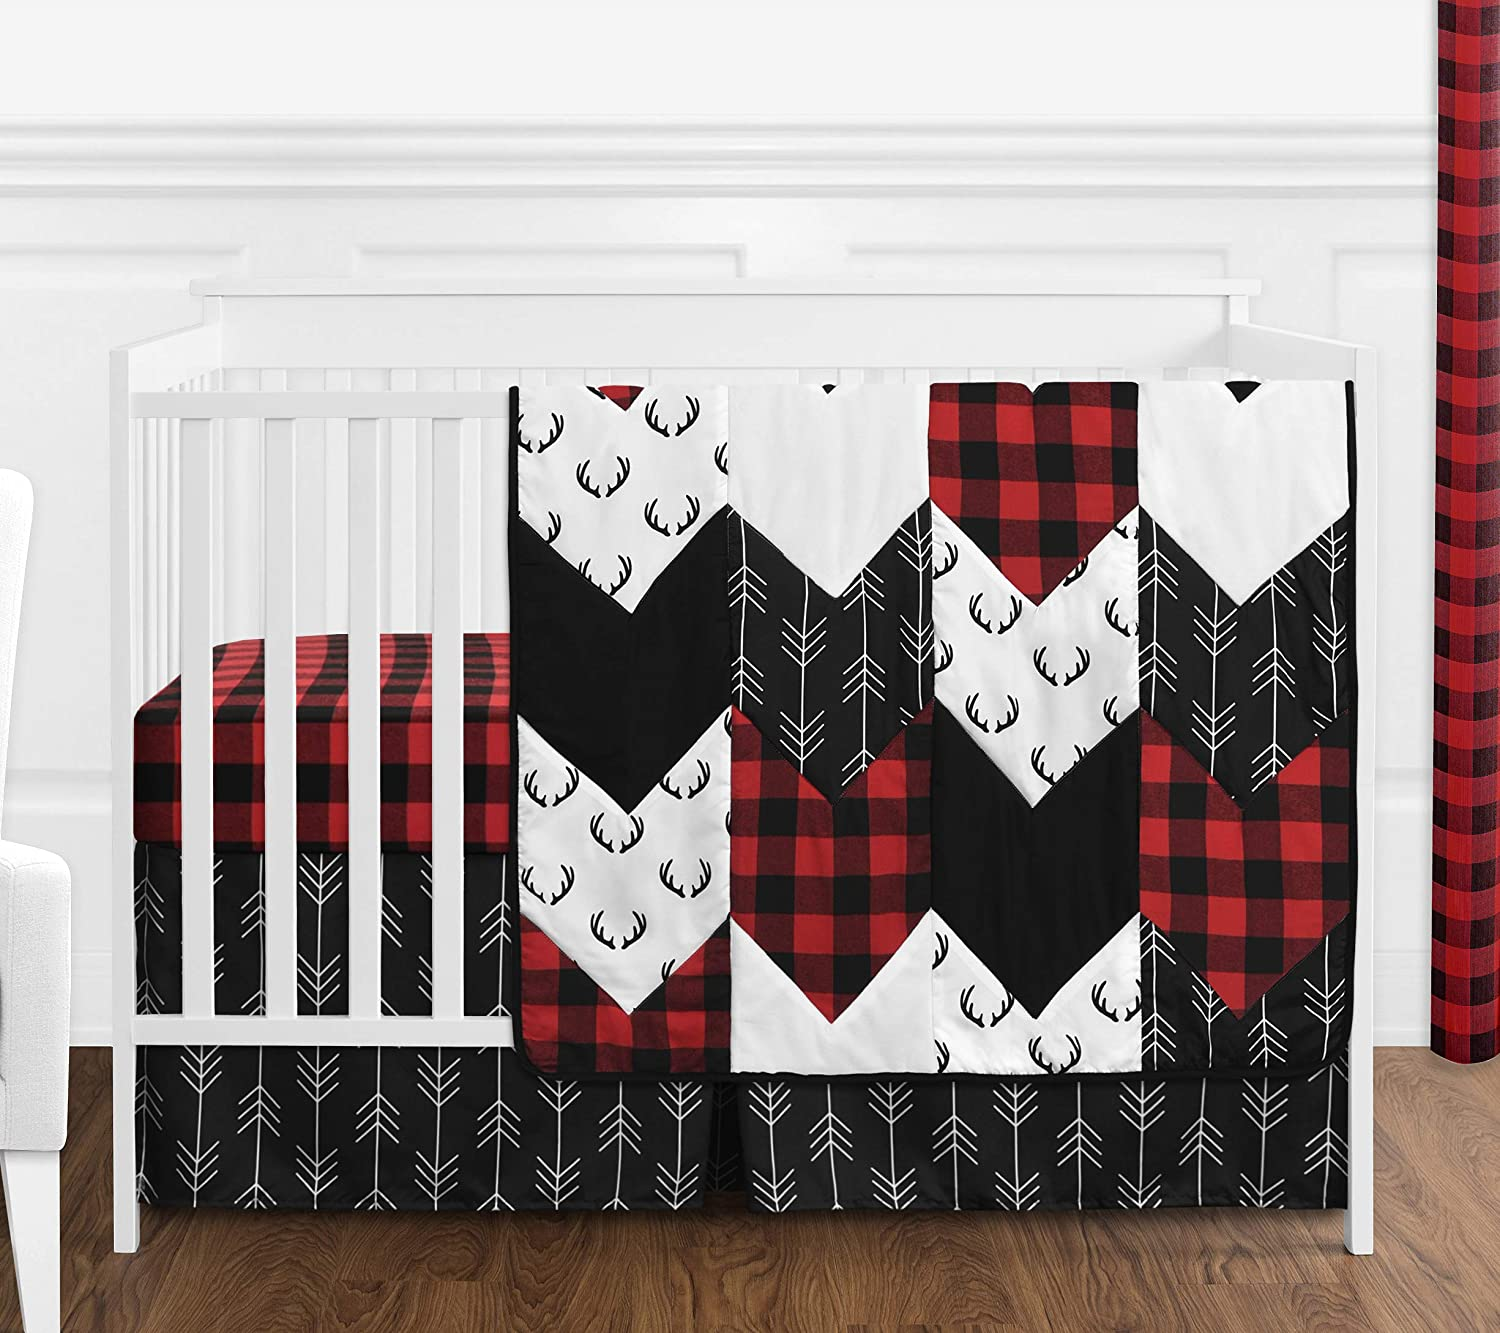 Sweet Jojo Designs Woodland Buffalo Plaid Baby Boy Nursery Crib Bedding Set - 4 Pieces - Red and Black Rustic Country Deer Lumberjack Arrow